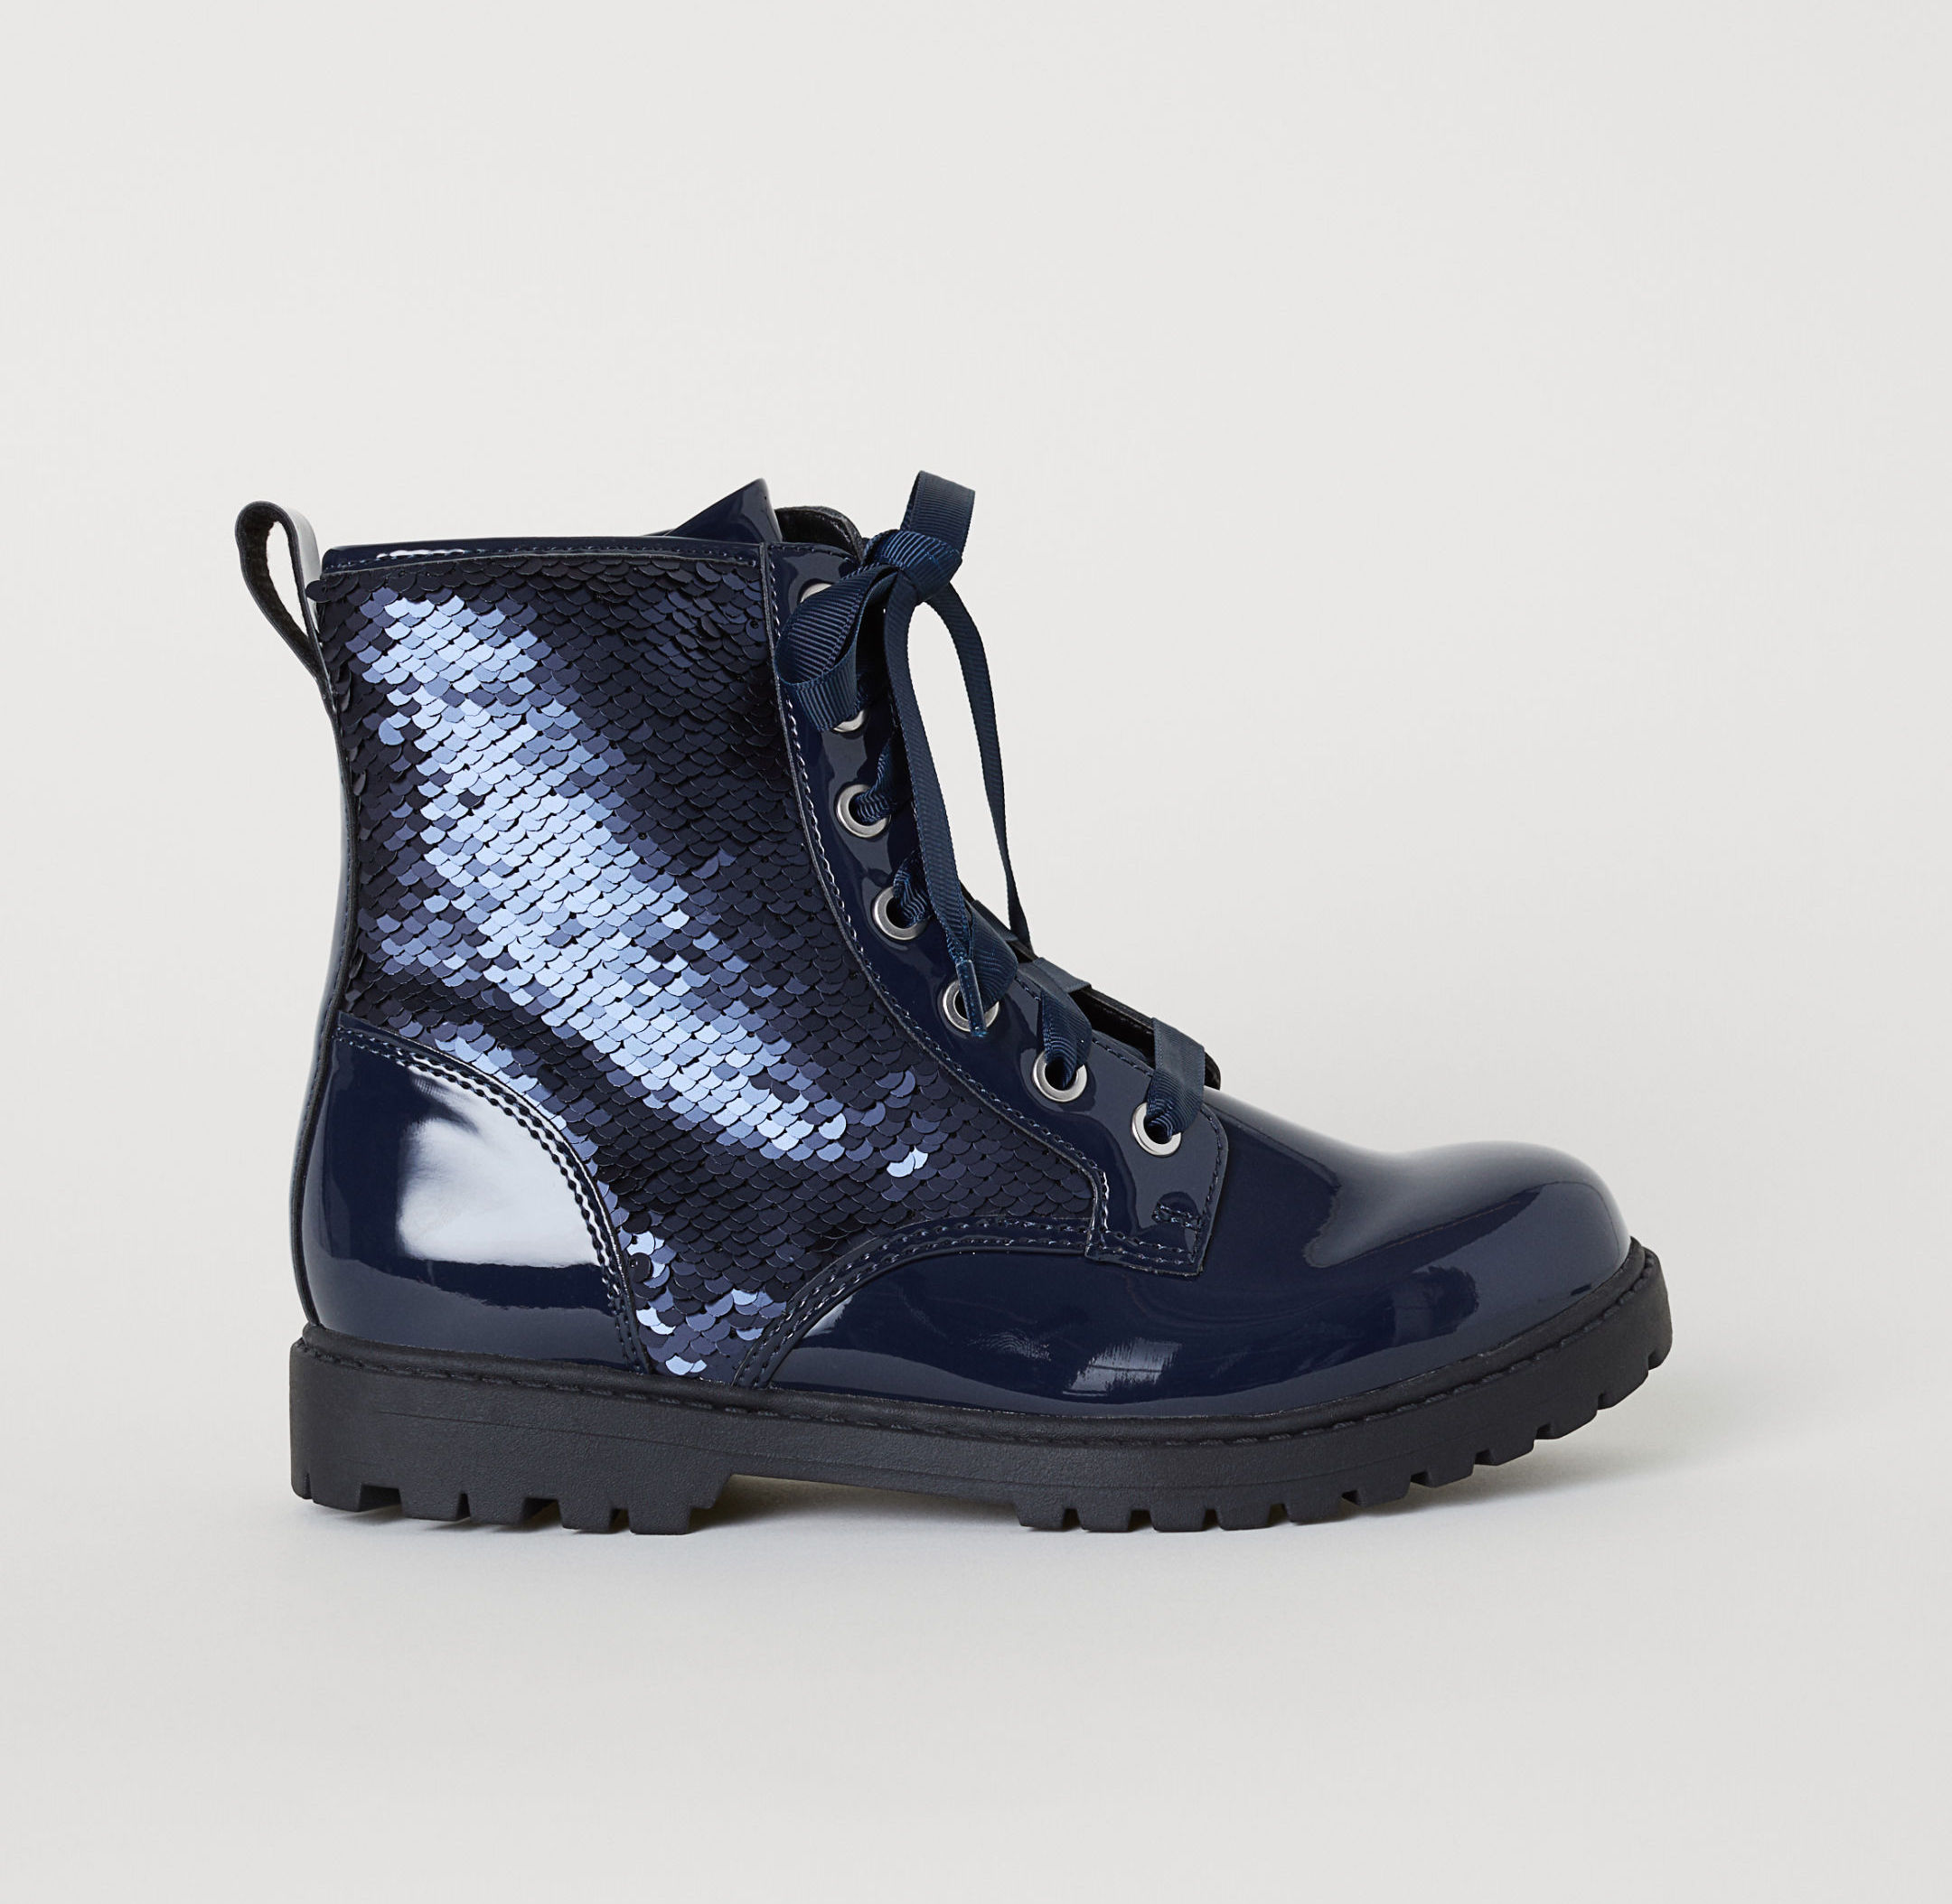 Cool gifts for tweens: Navy sequin boots from H&M